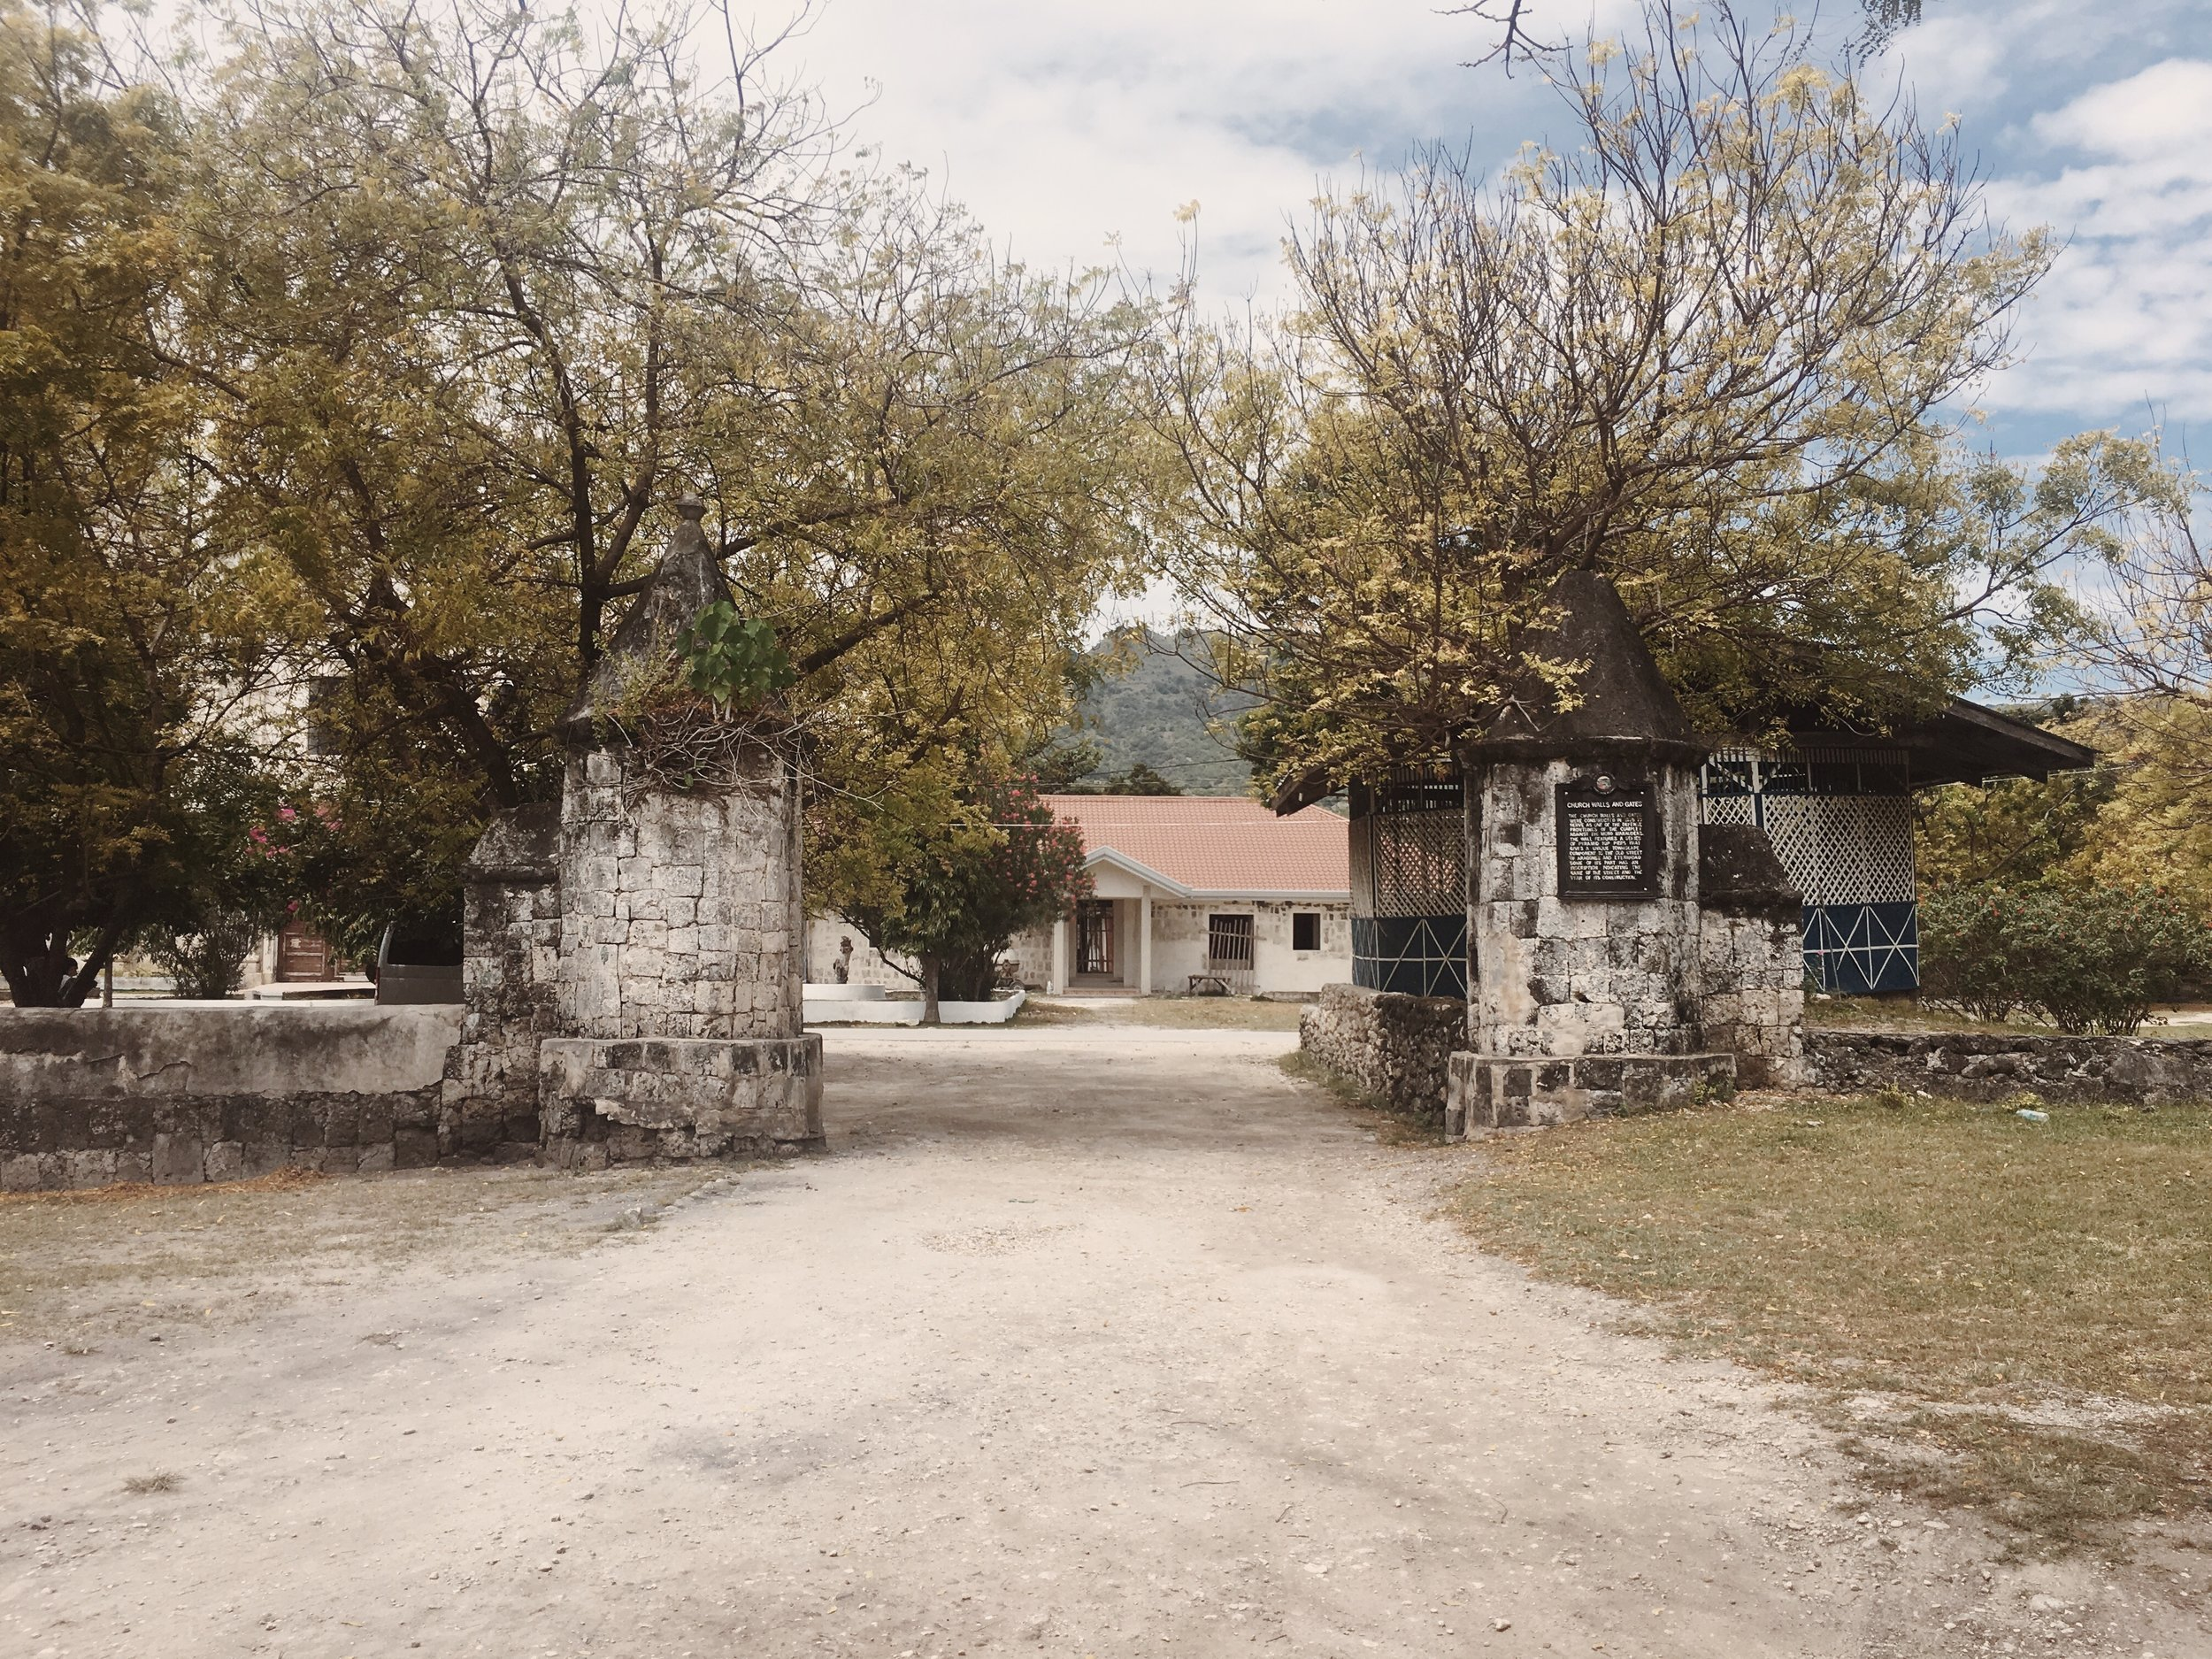 A Visit To Cebu's Historical Place: Cuartel and Baluarte 4